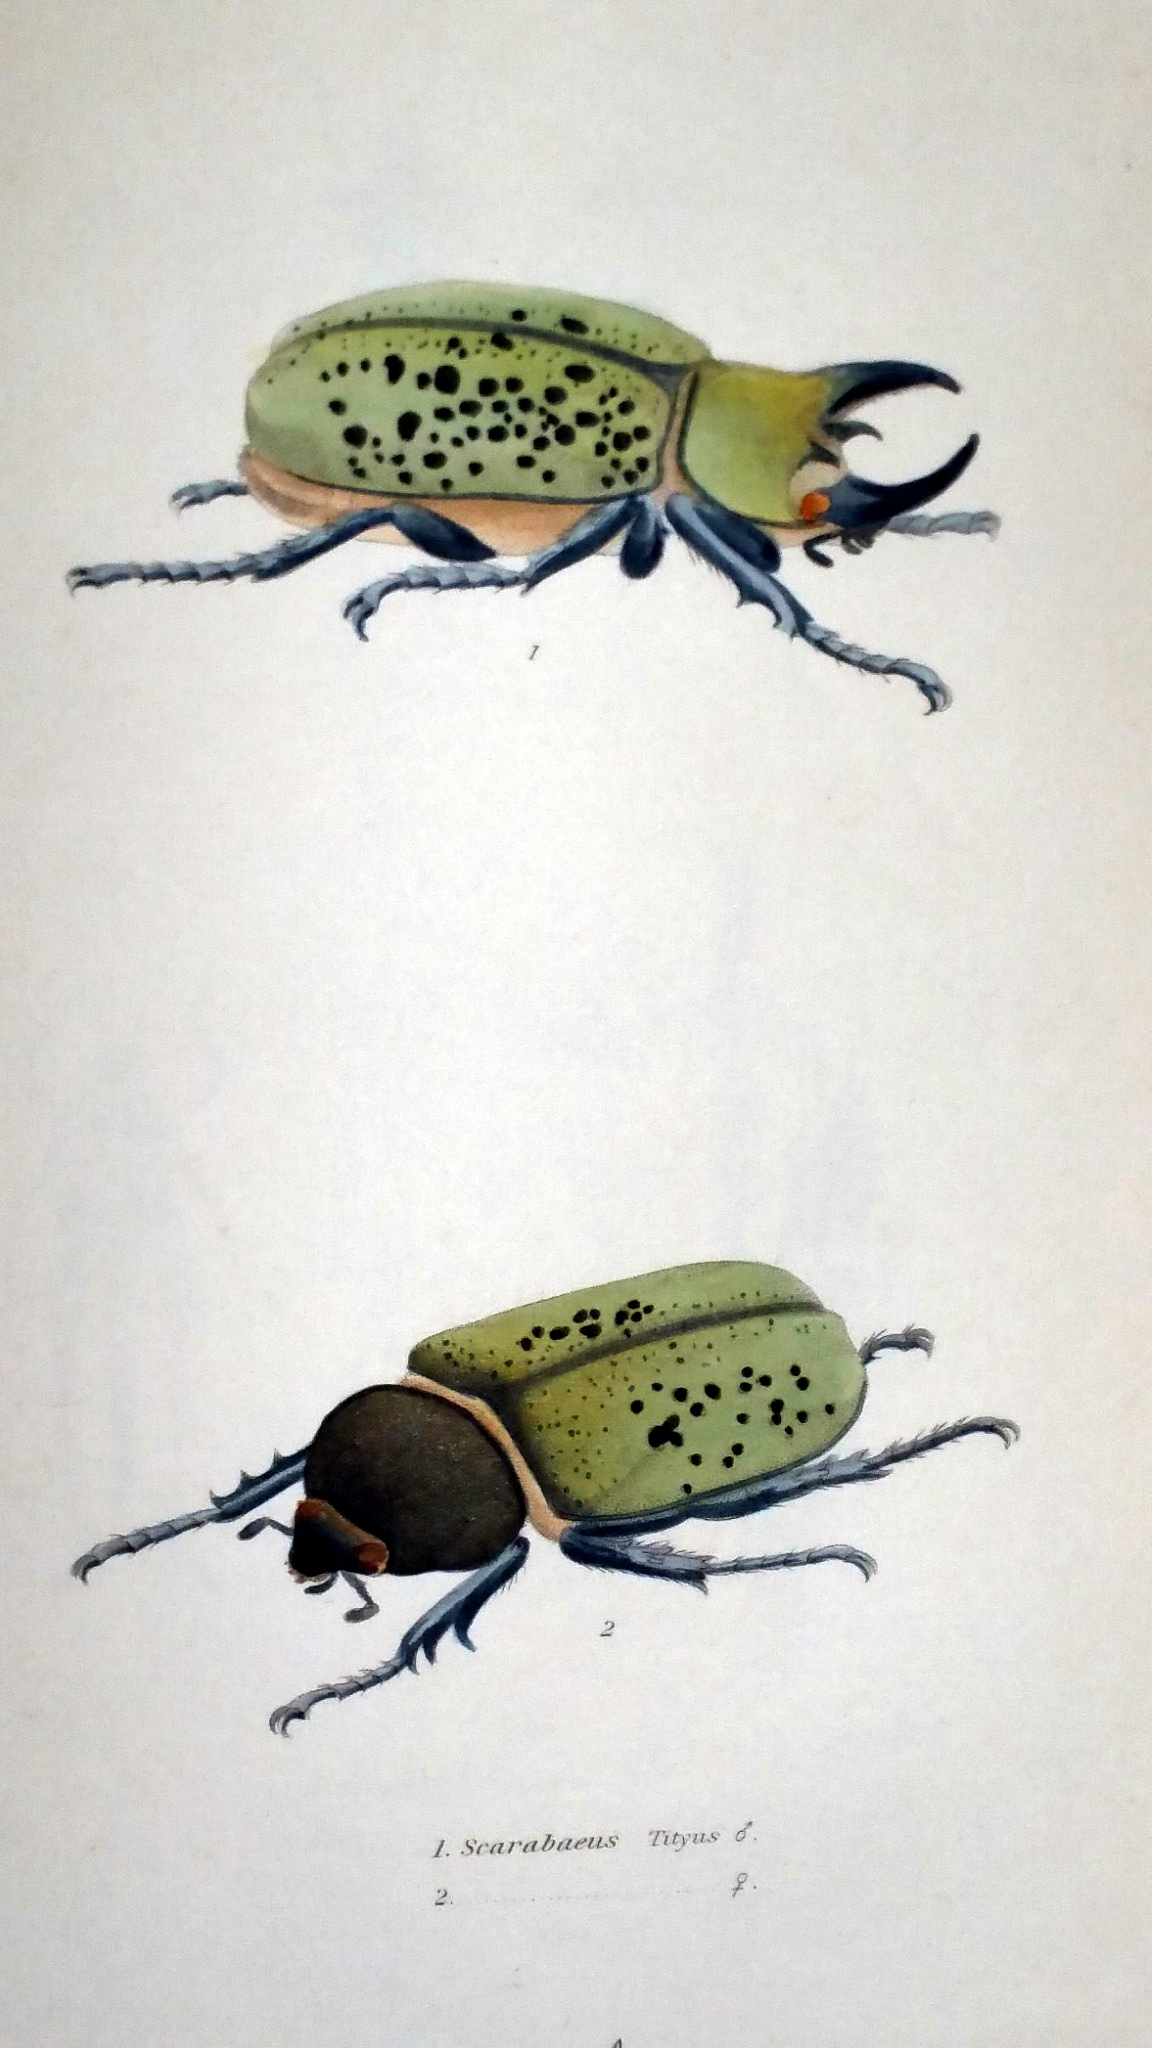 Image for The Complete Writings of Thomas Say on the Entomology of North America (Two Volumes)